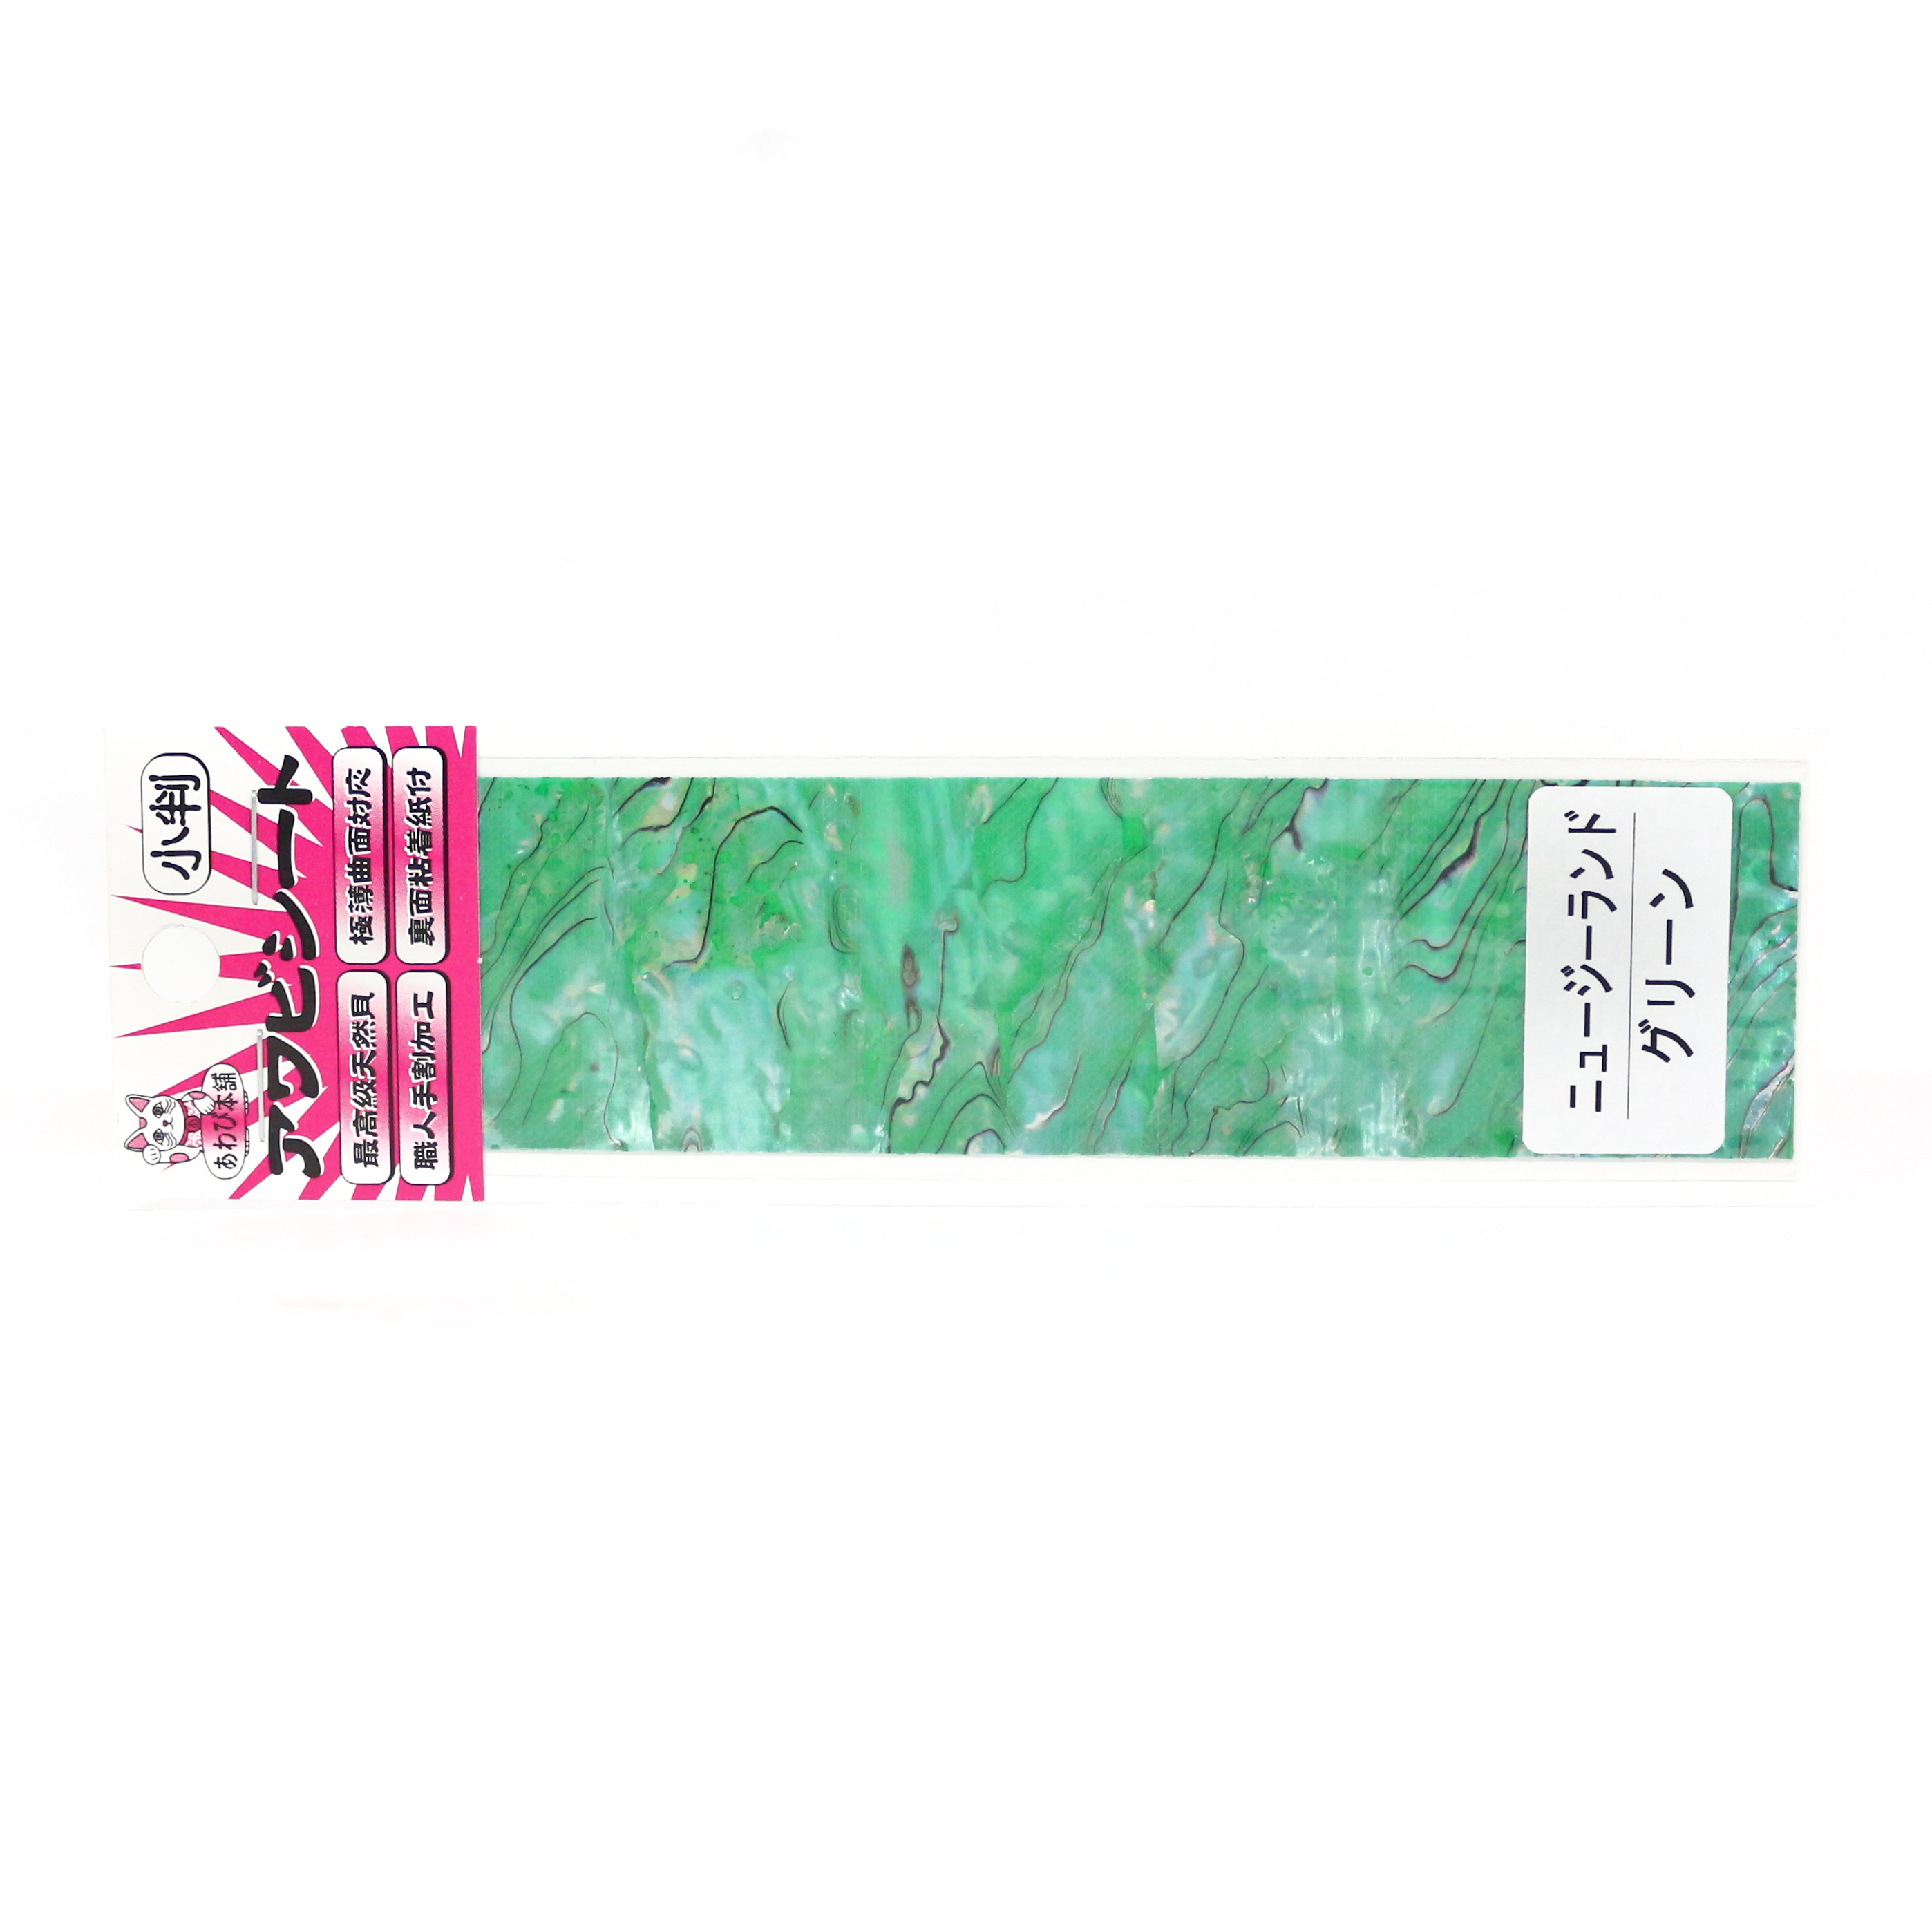 Awabi Honpo Awabi Sheet New Zealand Size S 40 x 140 mm Green (0620)